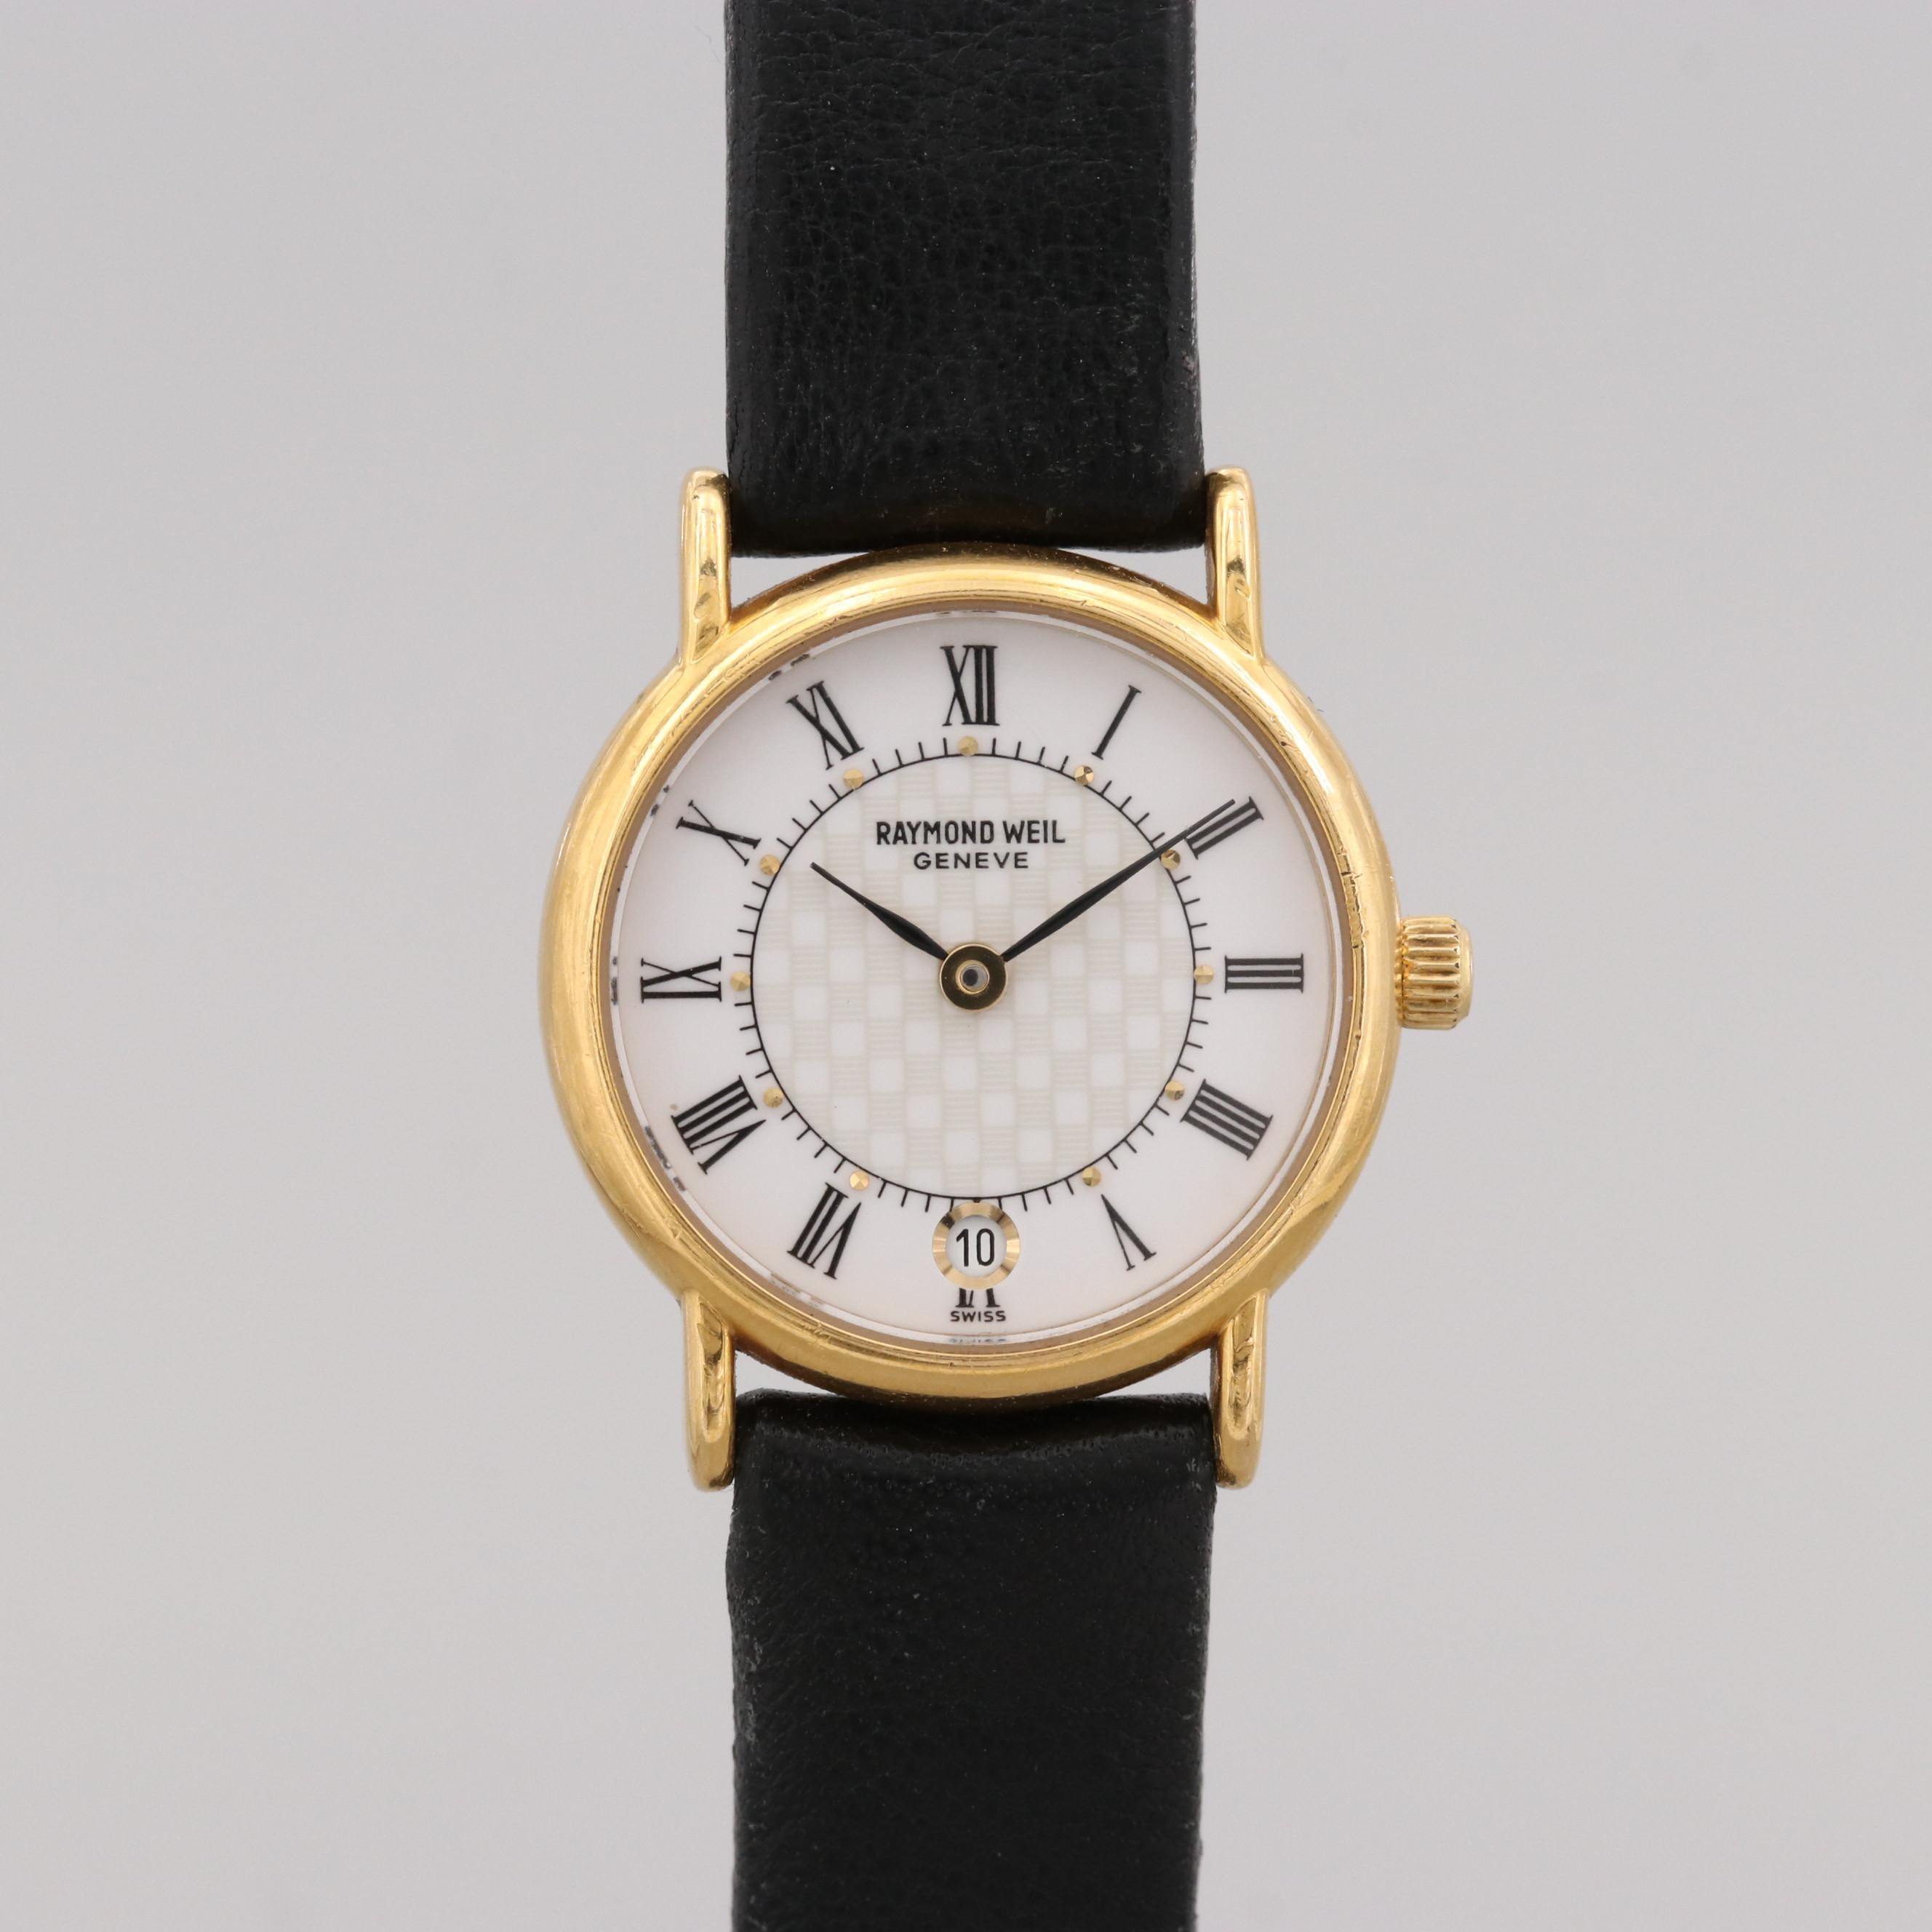 Raymond Weil 18K Gold Plated  Quartz Wristwatch